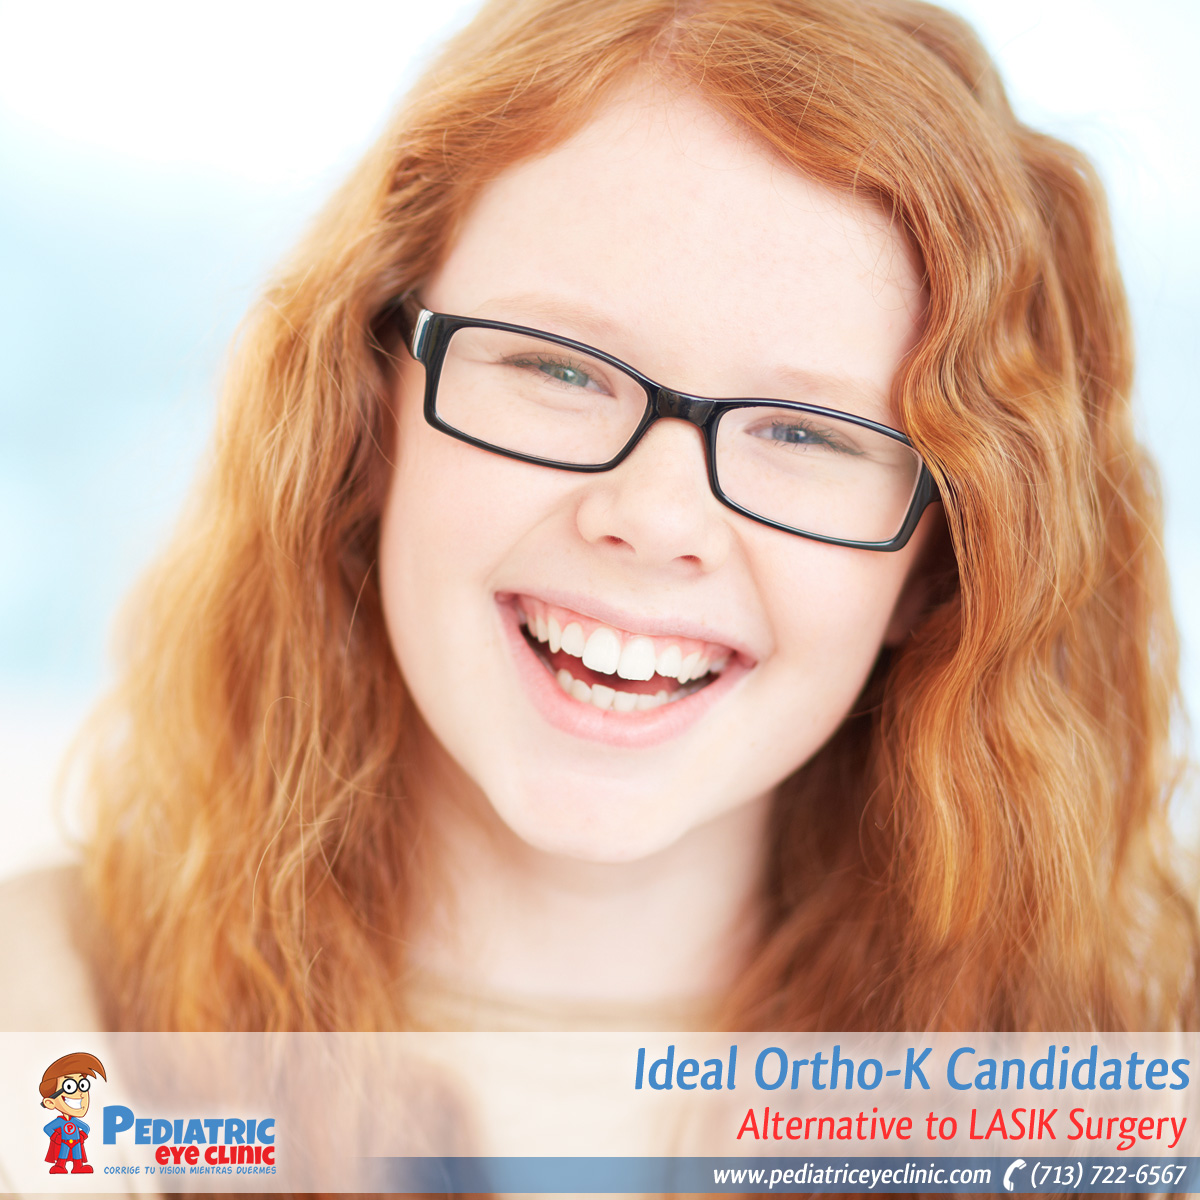 13-ideal-ortho-k-candidates